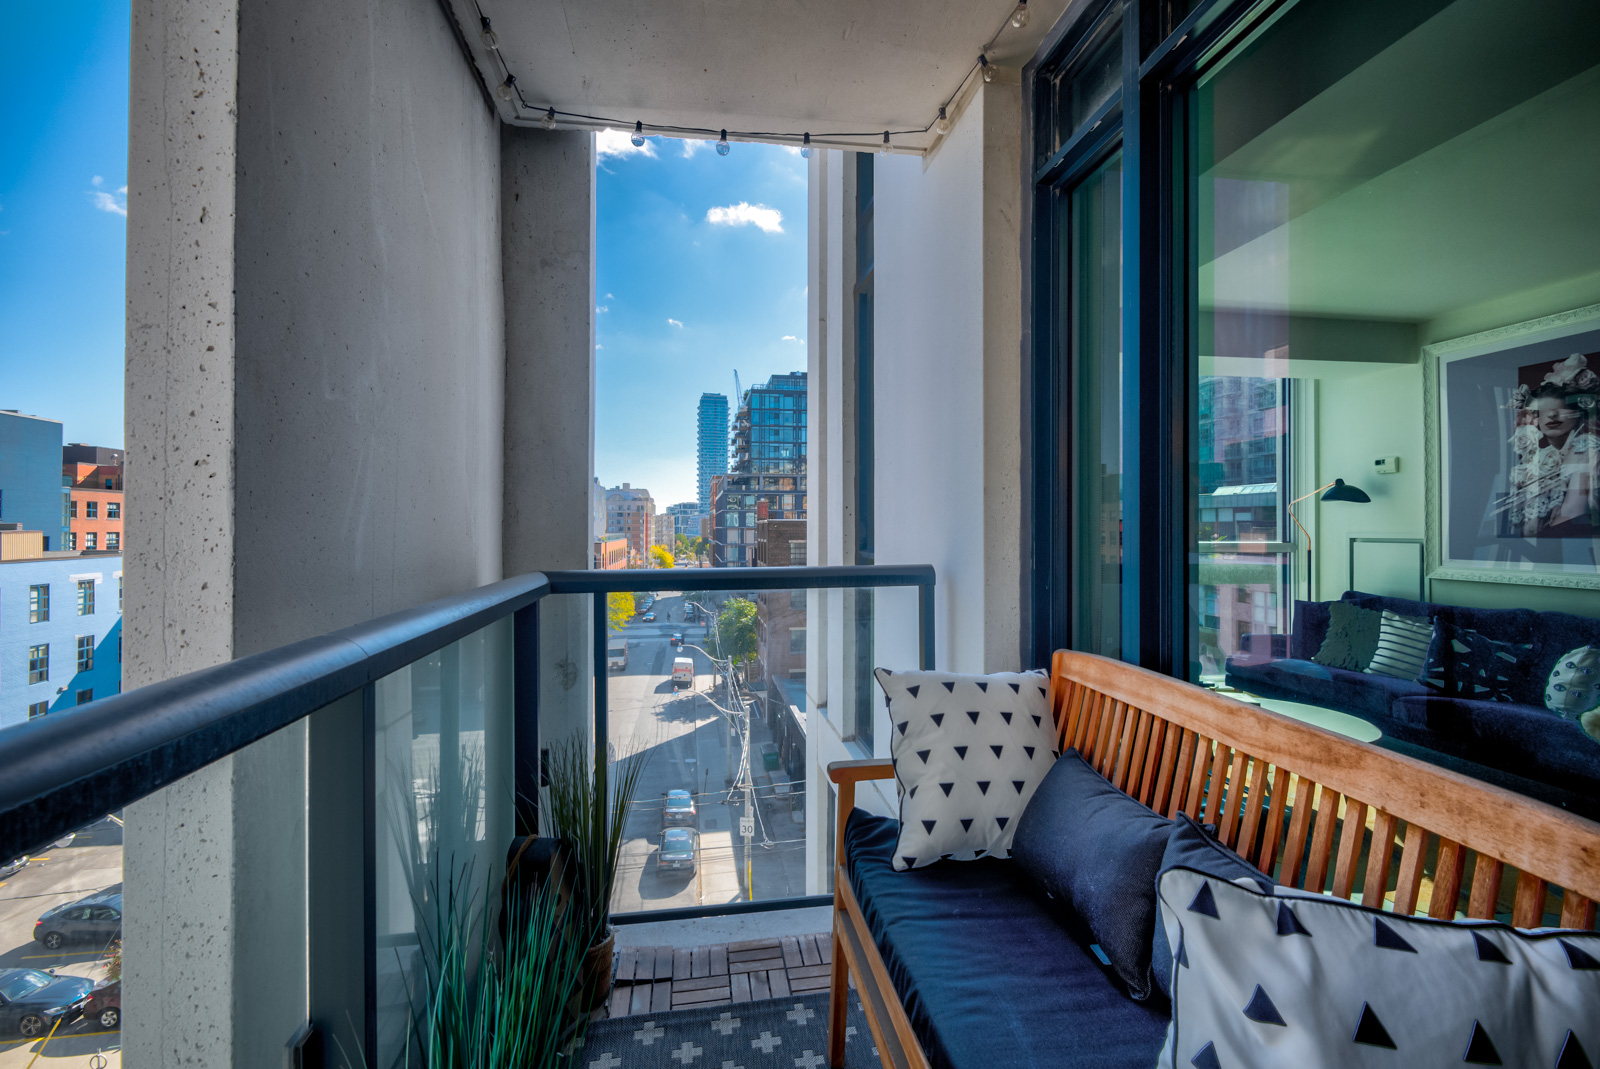 Balcony with glass-panels and bench at Ivory condos.